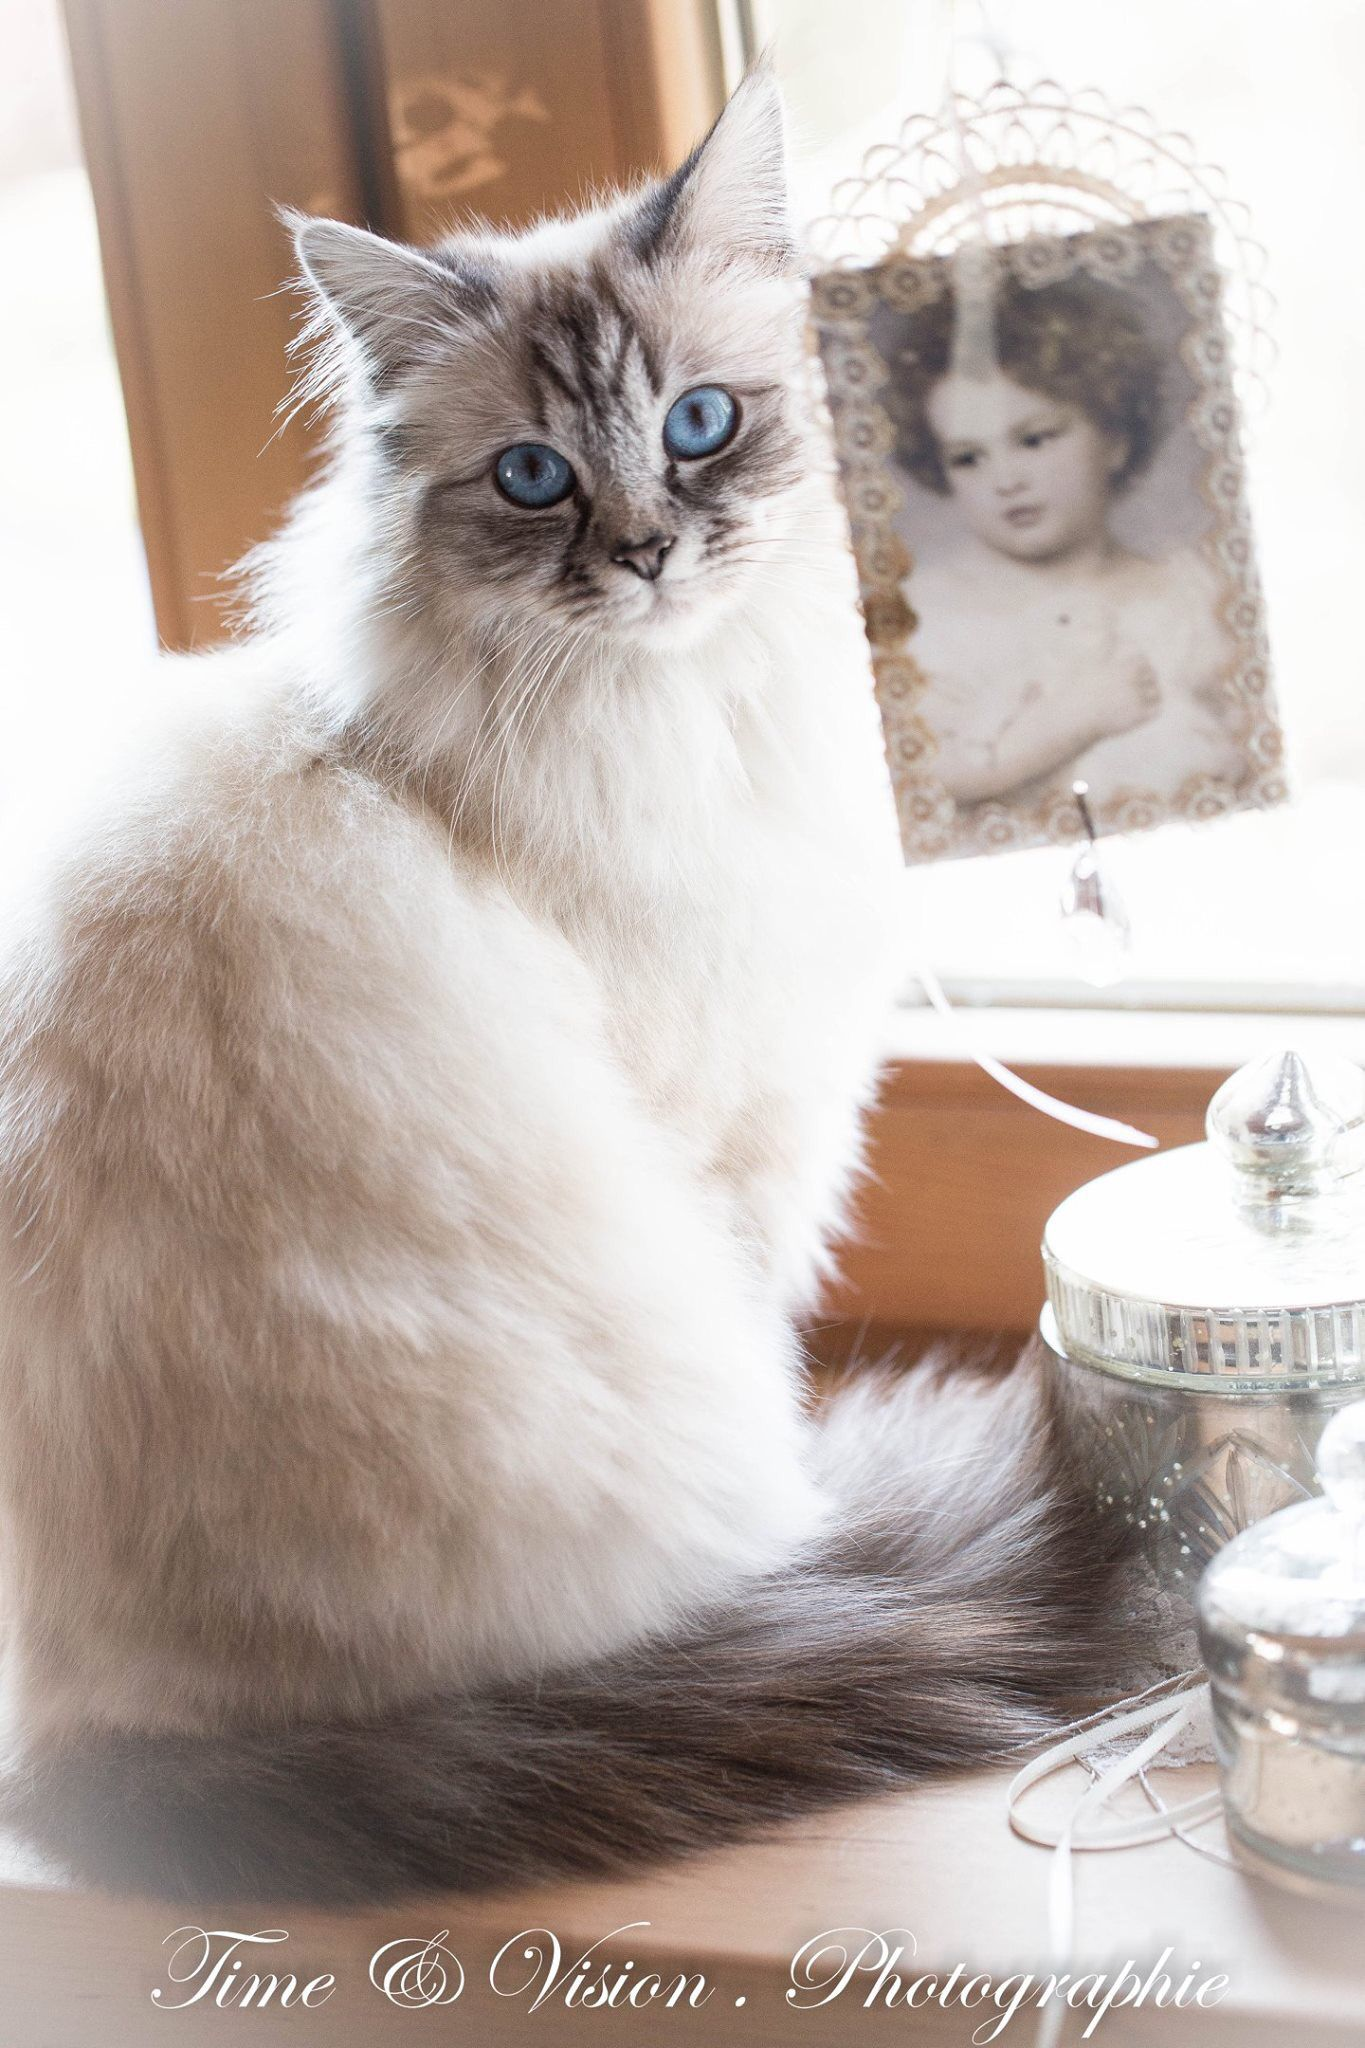 miss Pollyanna's Place image by Tonya Cats, Animals